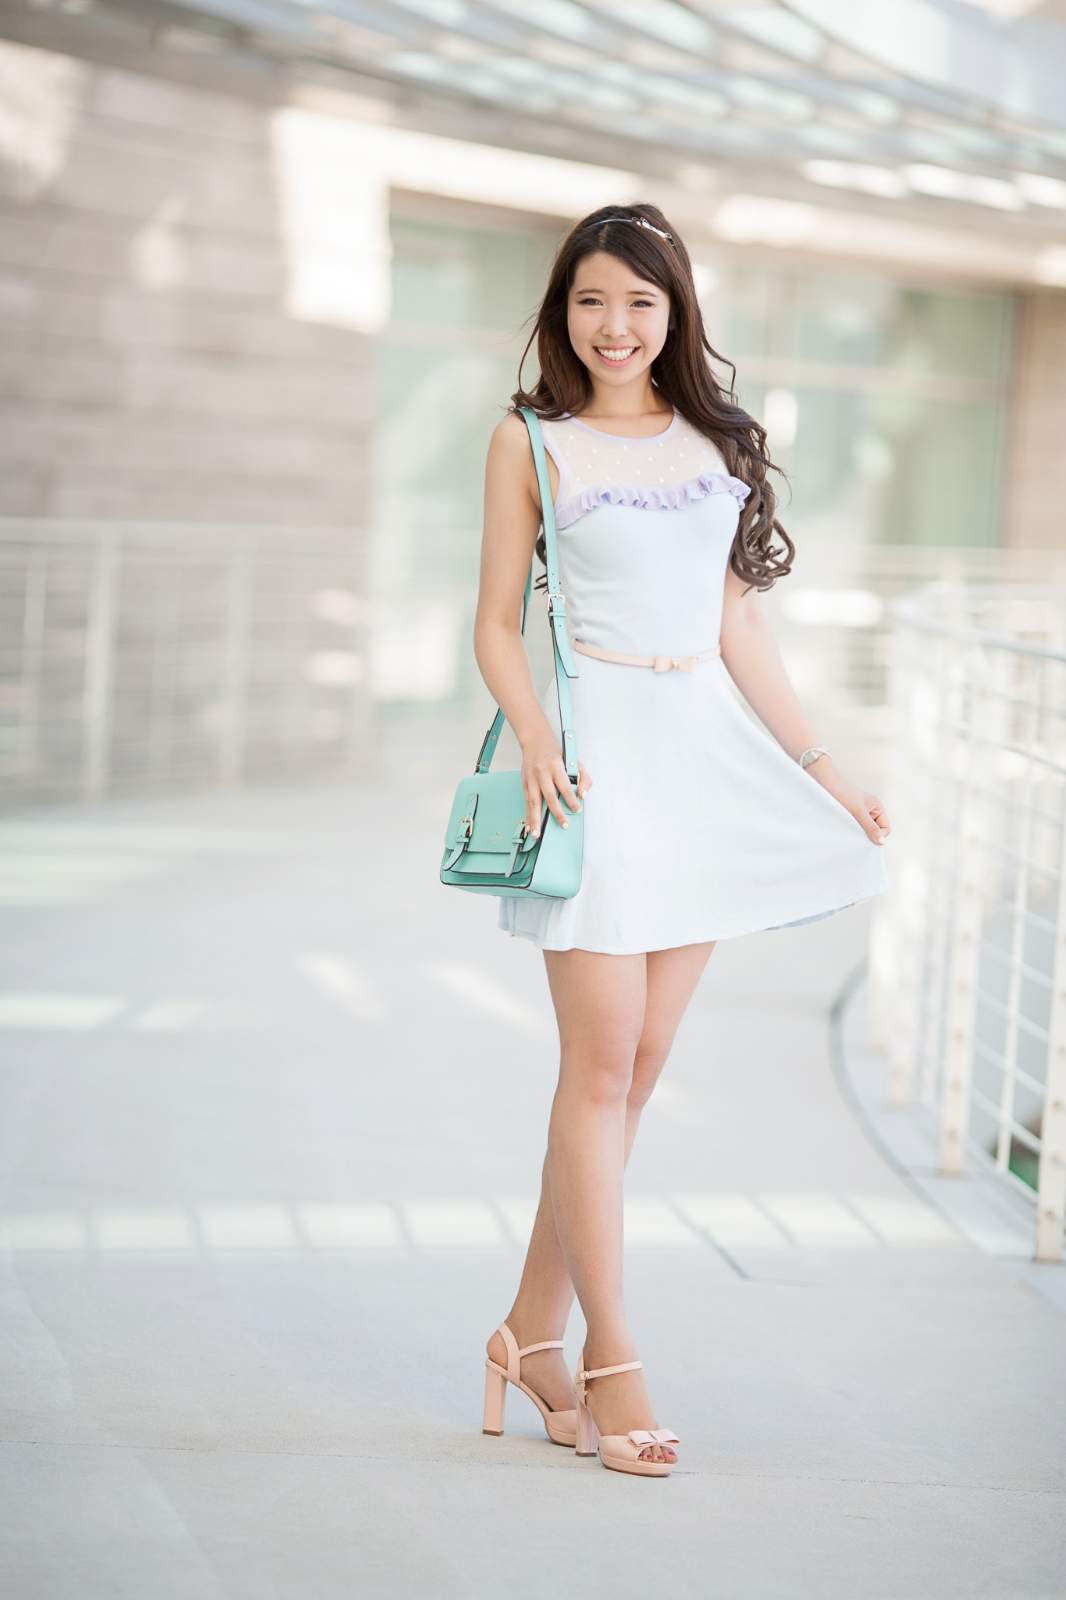 pastel dress lavender periwinkle shanghai curly hair asian girl